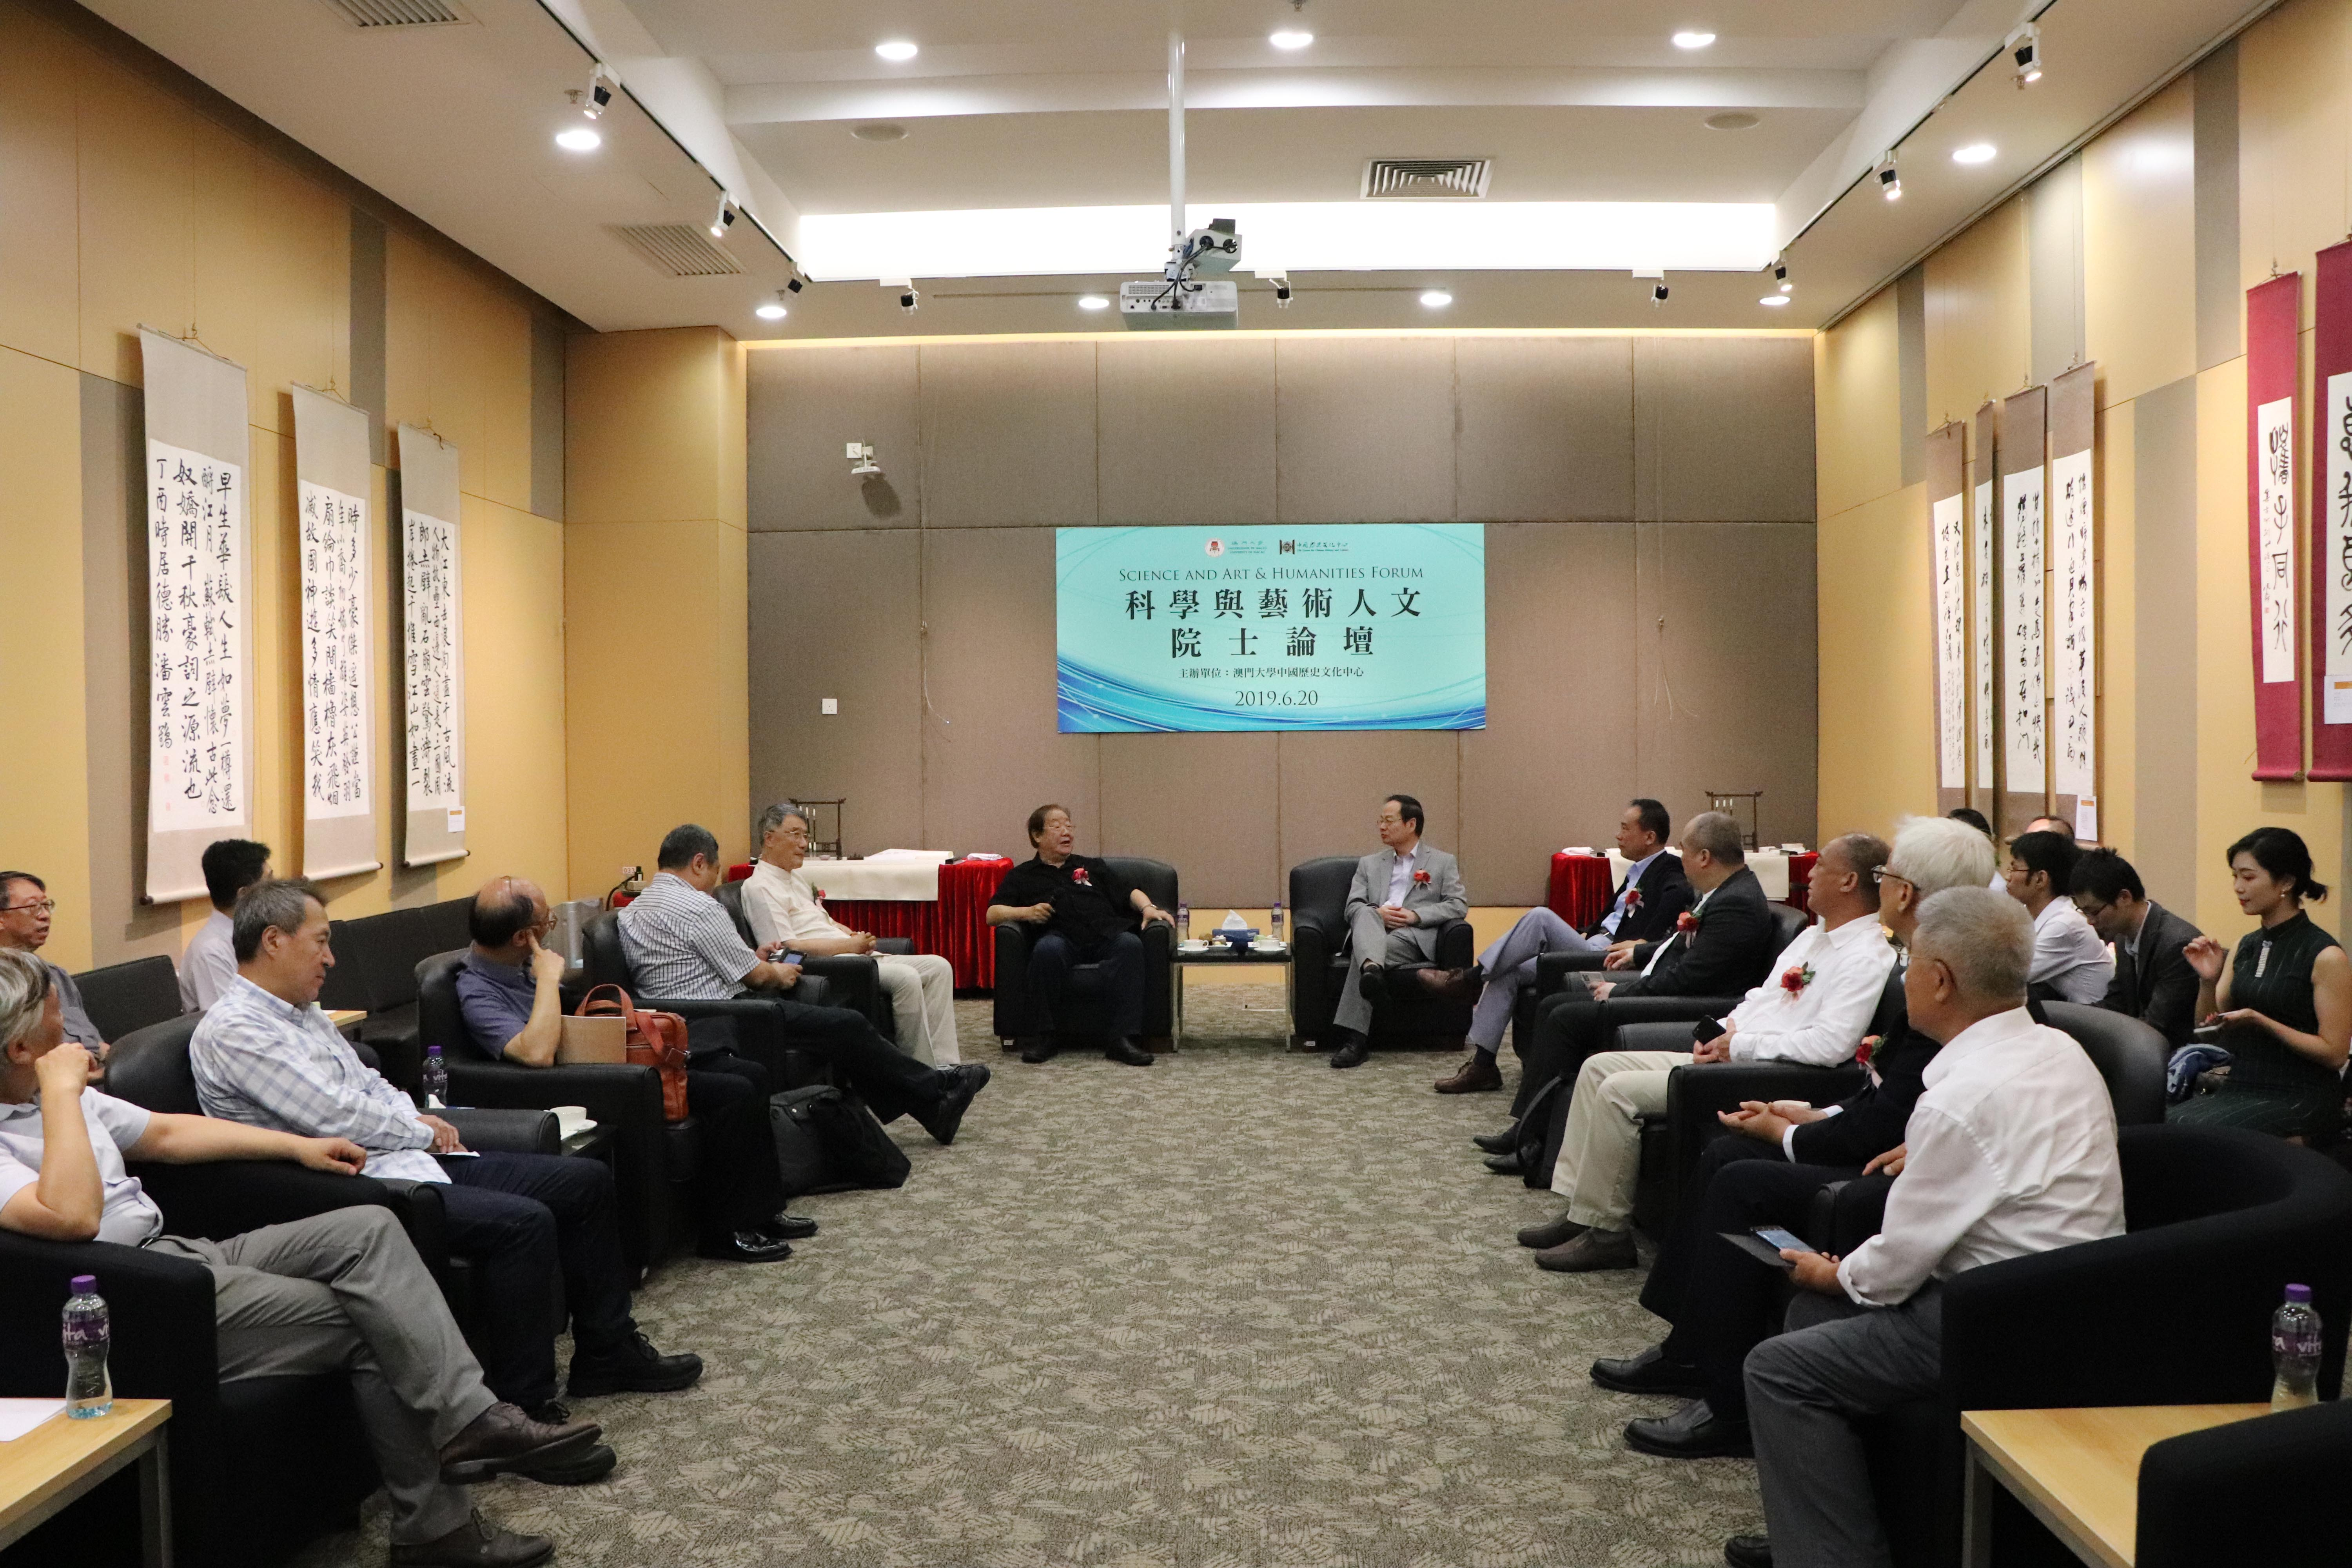 Academicians attend a forum on science, arts, and humanities at UM